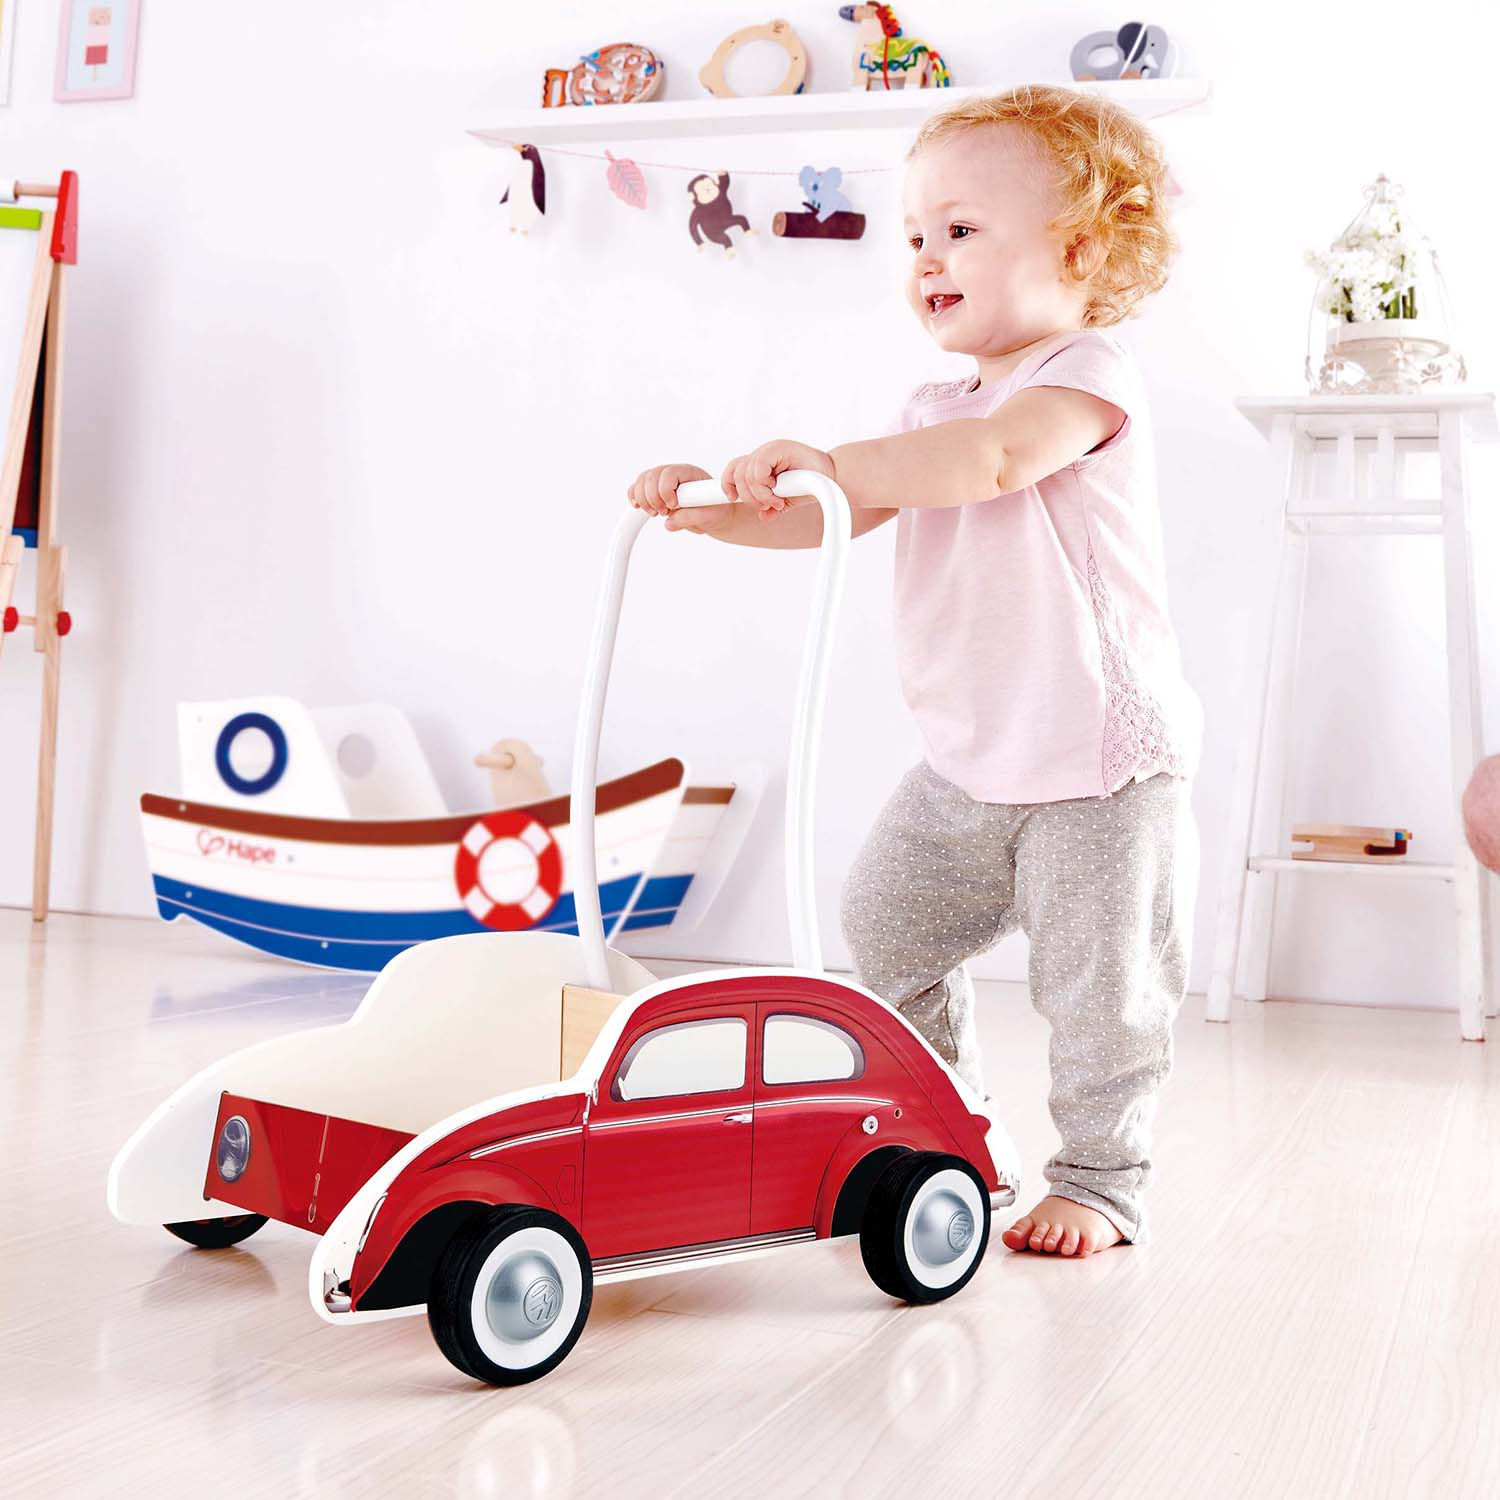 baby style aliexpress item trolley kids s from walkers world volkswagen toddler famous gb brand child alibaba free mother shipping in walker goodbaby com on good of group car